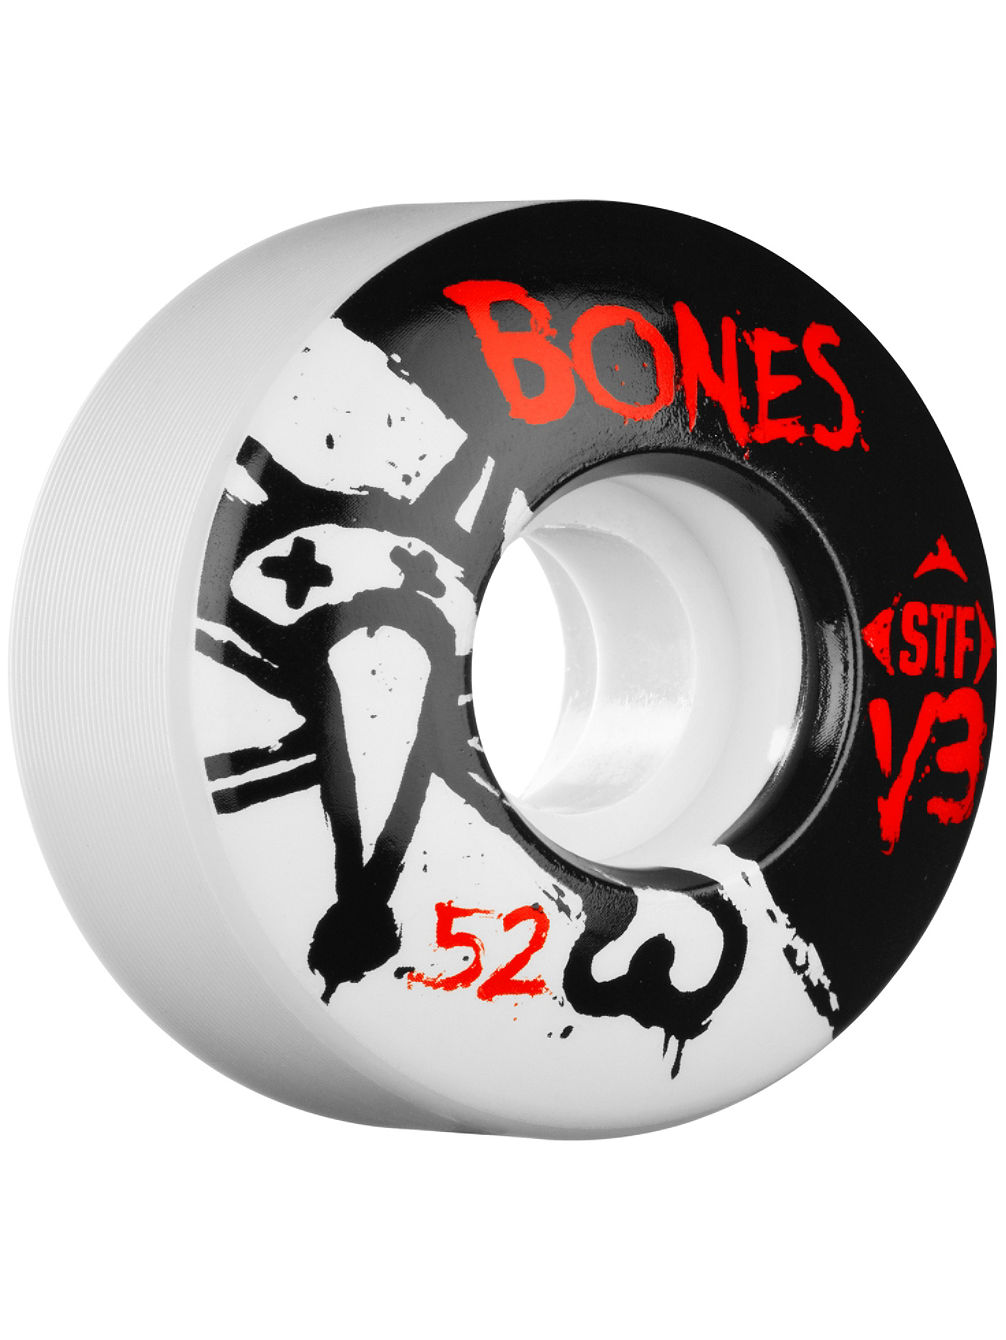 STF V3 Series II 83B 54mm Wheels